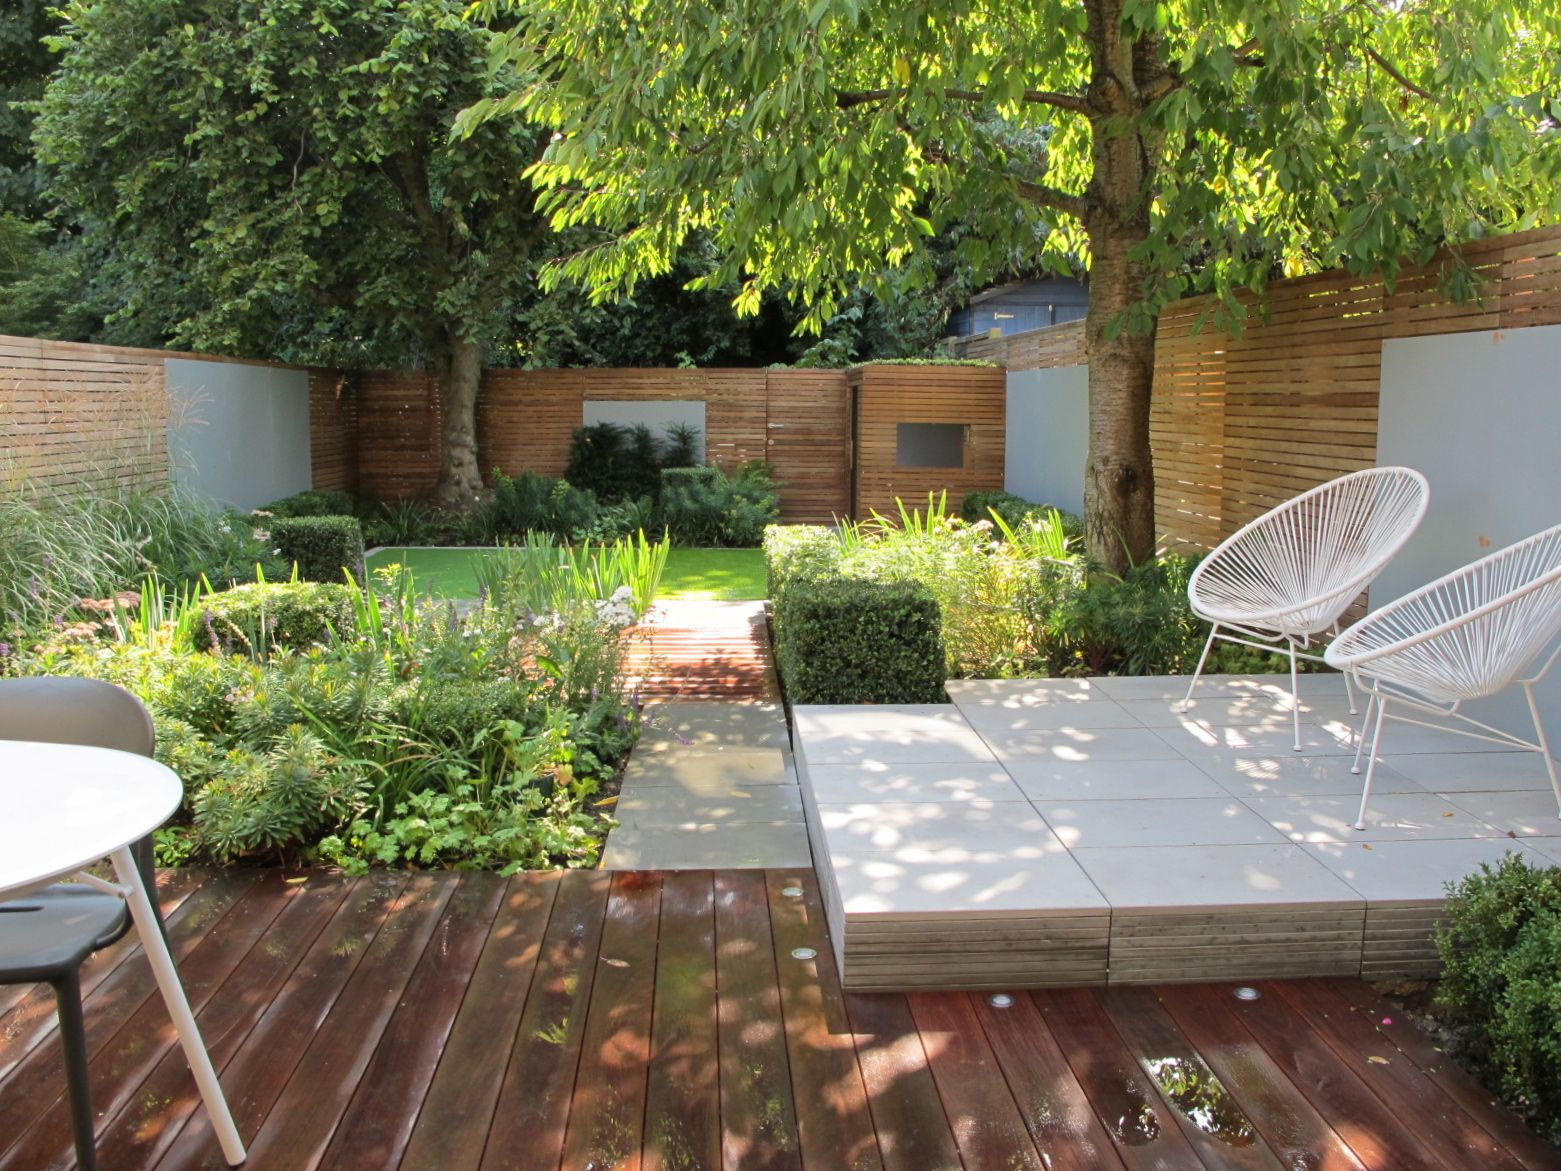 garden as featured on alan titchmarshs show love your garden itv north london garden